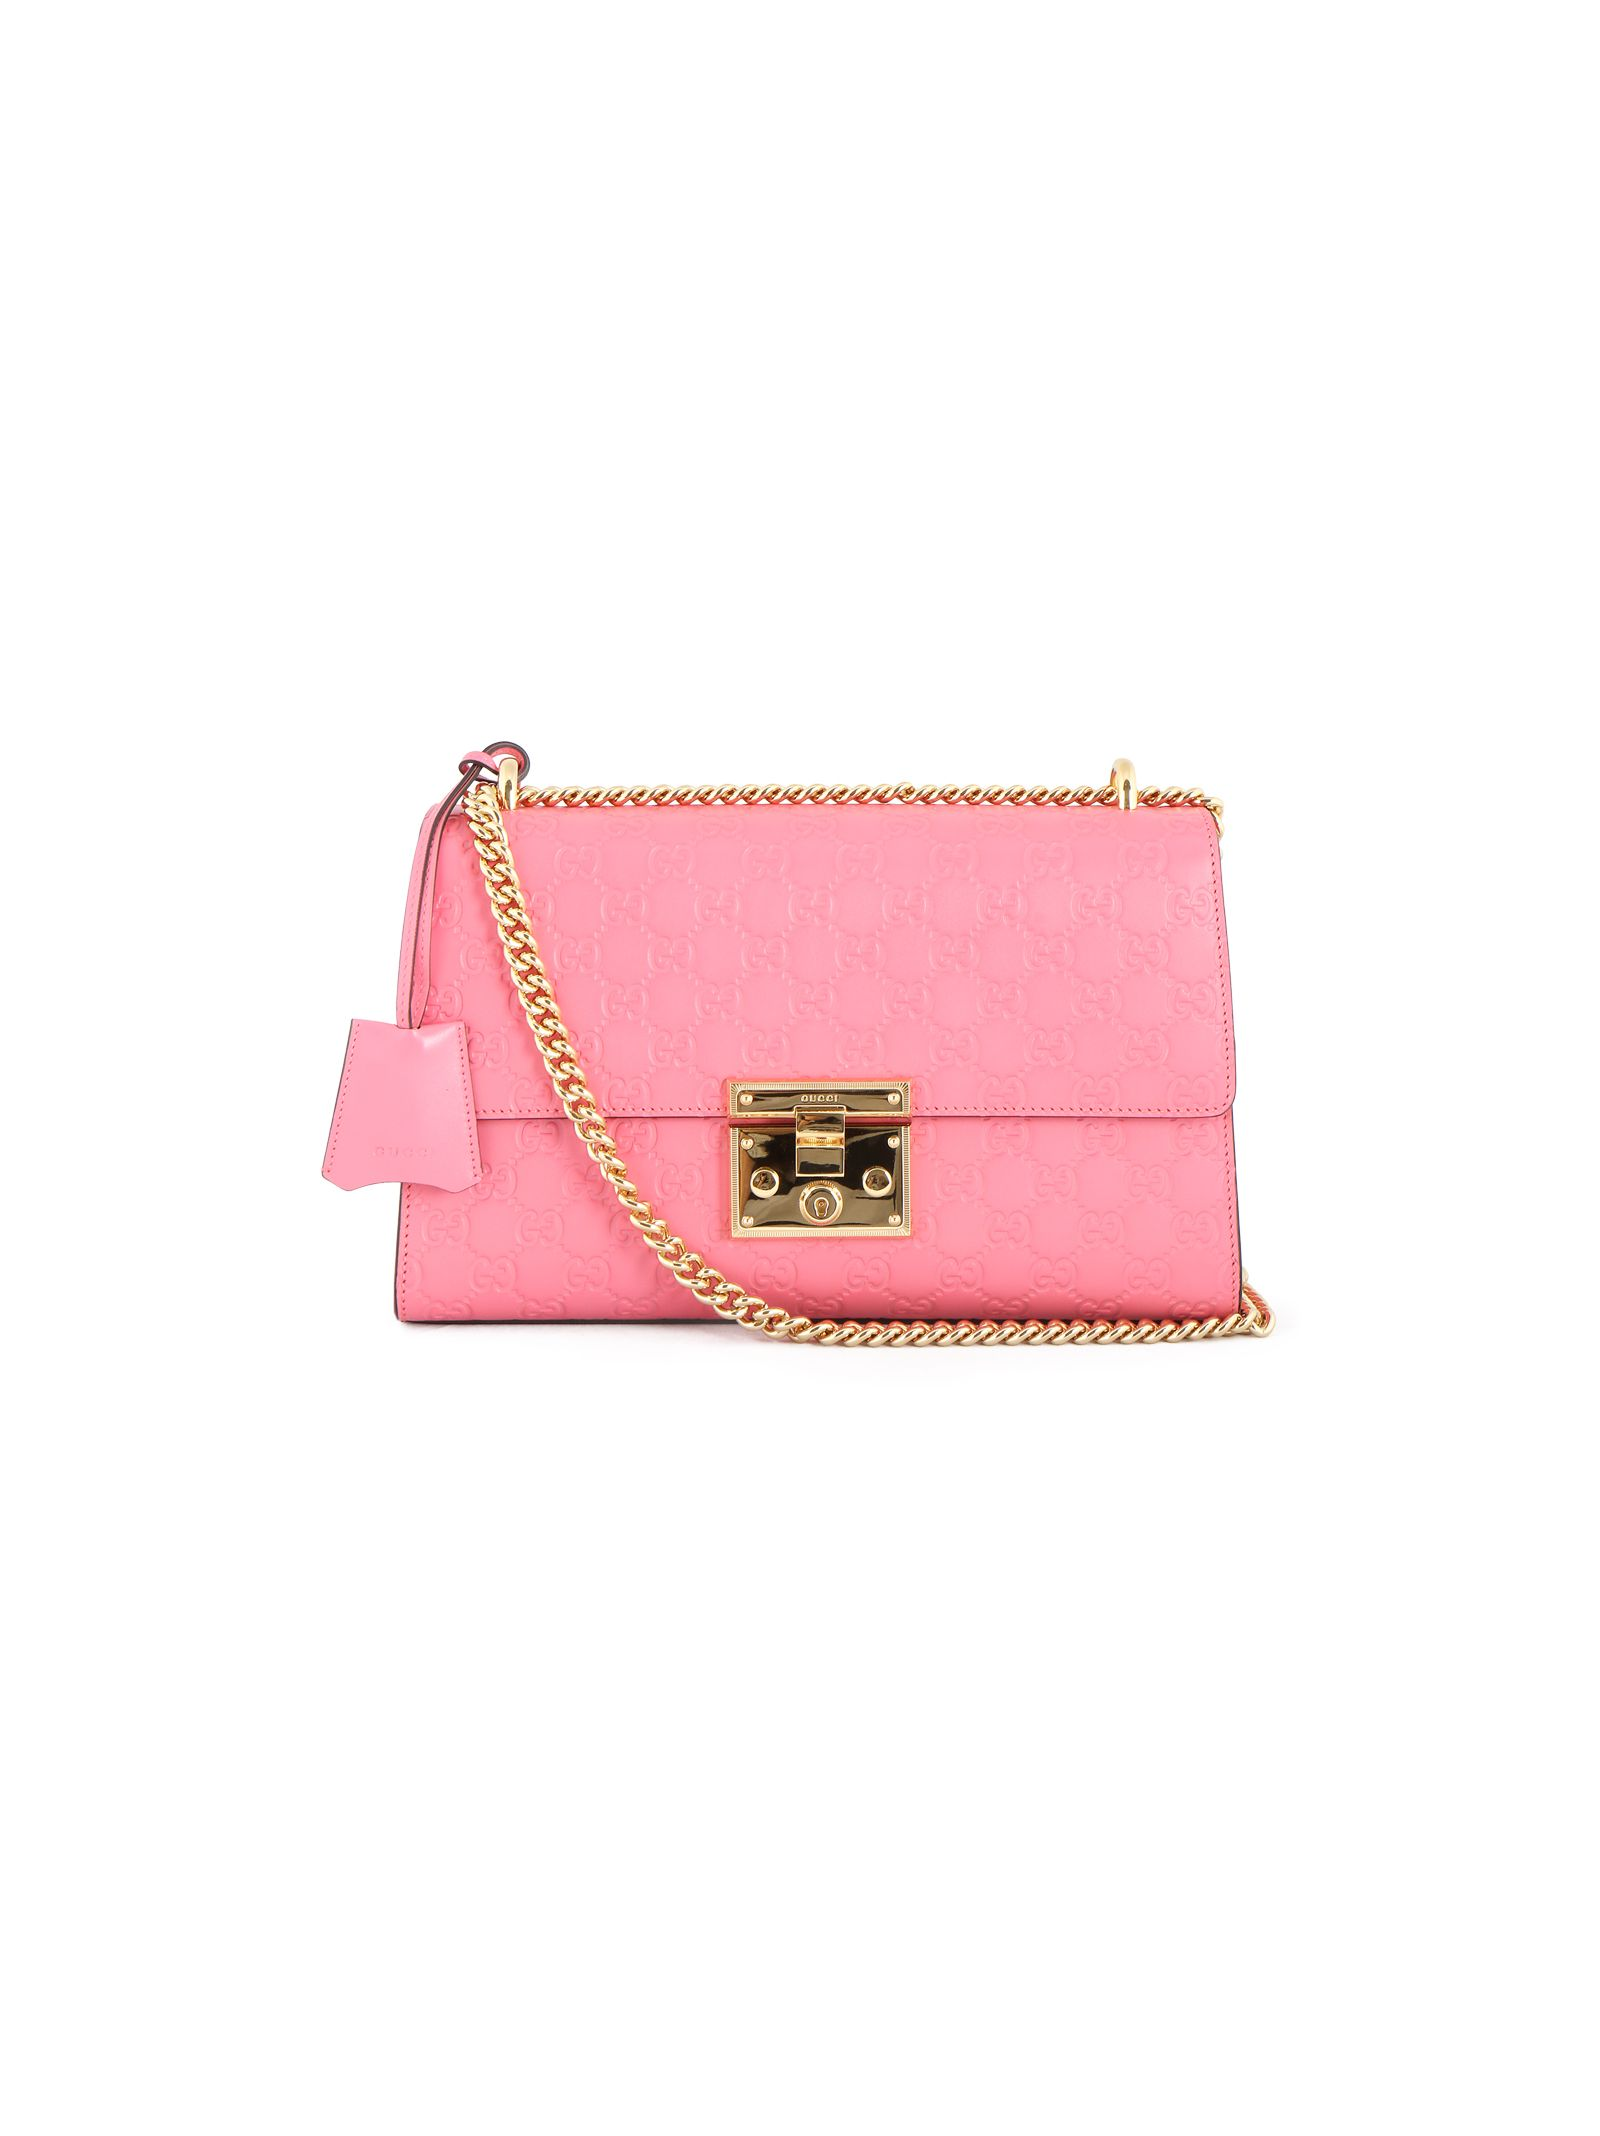 Pink women's bag from Gucci